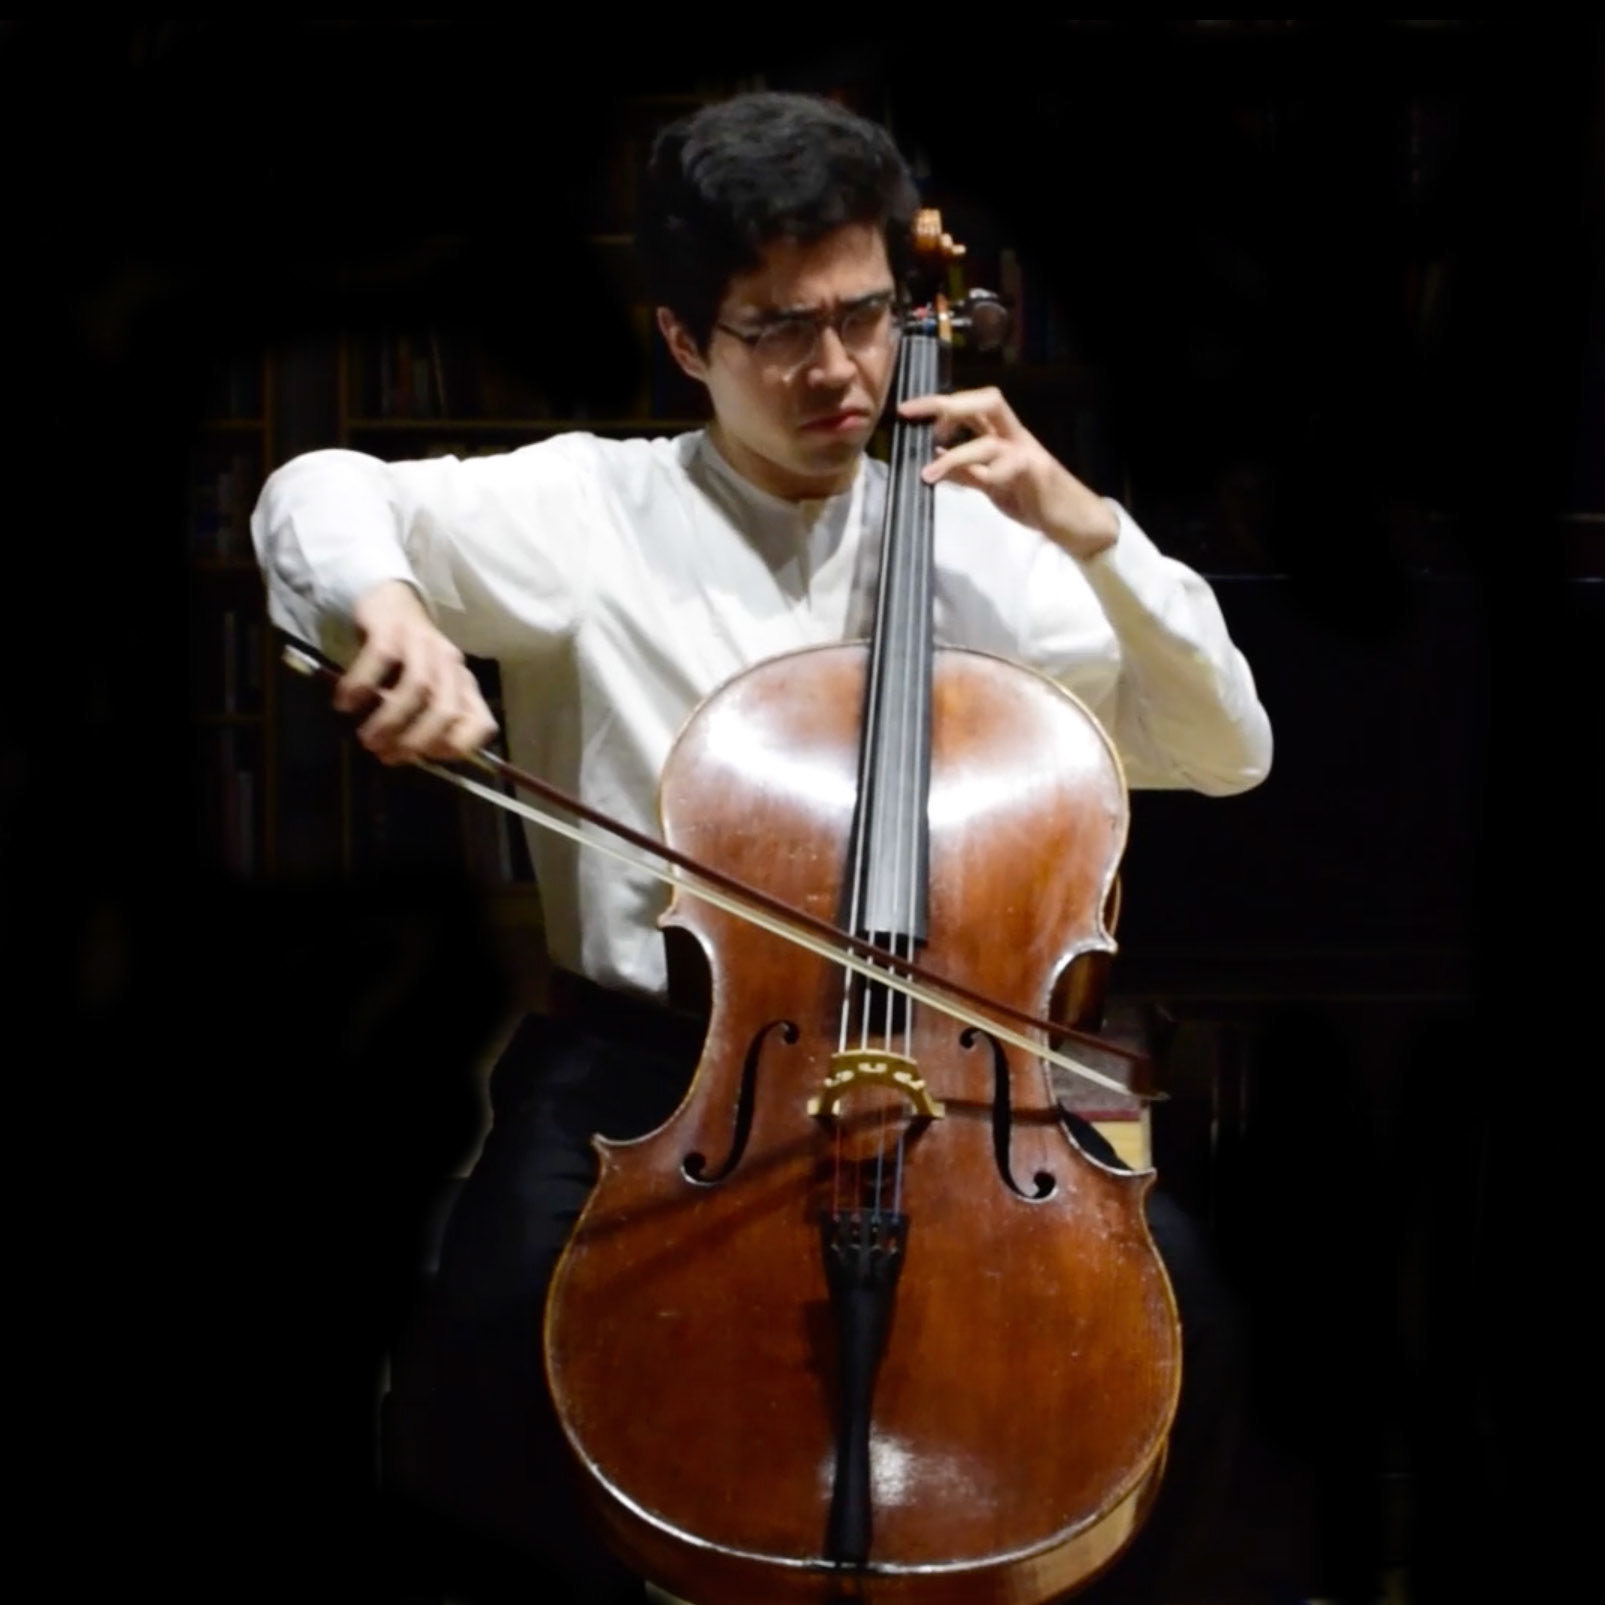 - Issei Herr, of Juilliard School of Music, plays solo cello repertoire by Bach, Berio, Xenakis, and others. The concert includes the premiere of of Circle Circle by Peter Kramer. Donations ($15 appreciated) on the door. No advance booking. For more information see isseiherr.com